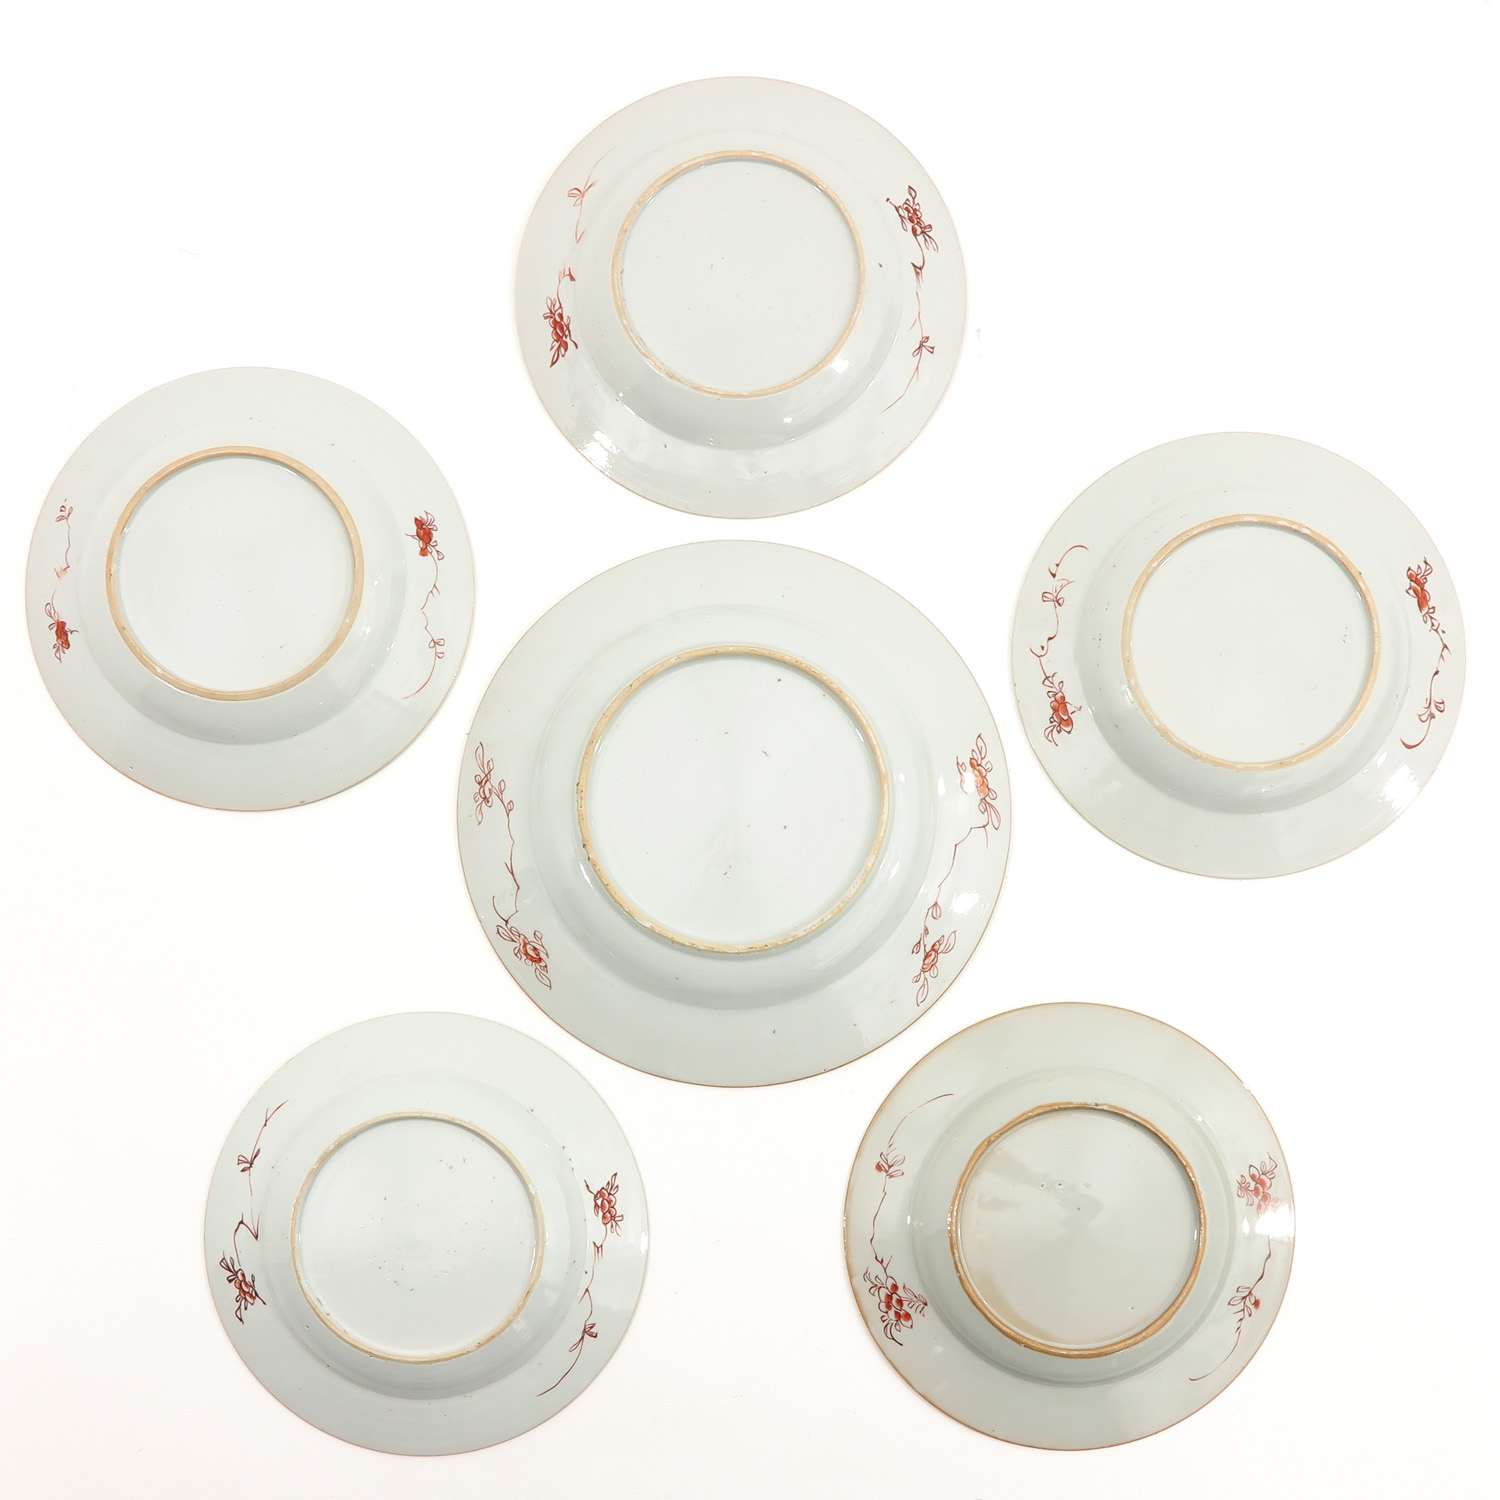 A Collection of 6 Polychrome Decor Plates - Image 2 of 9